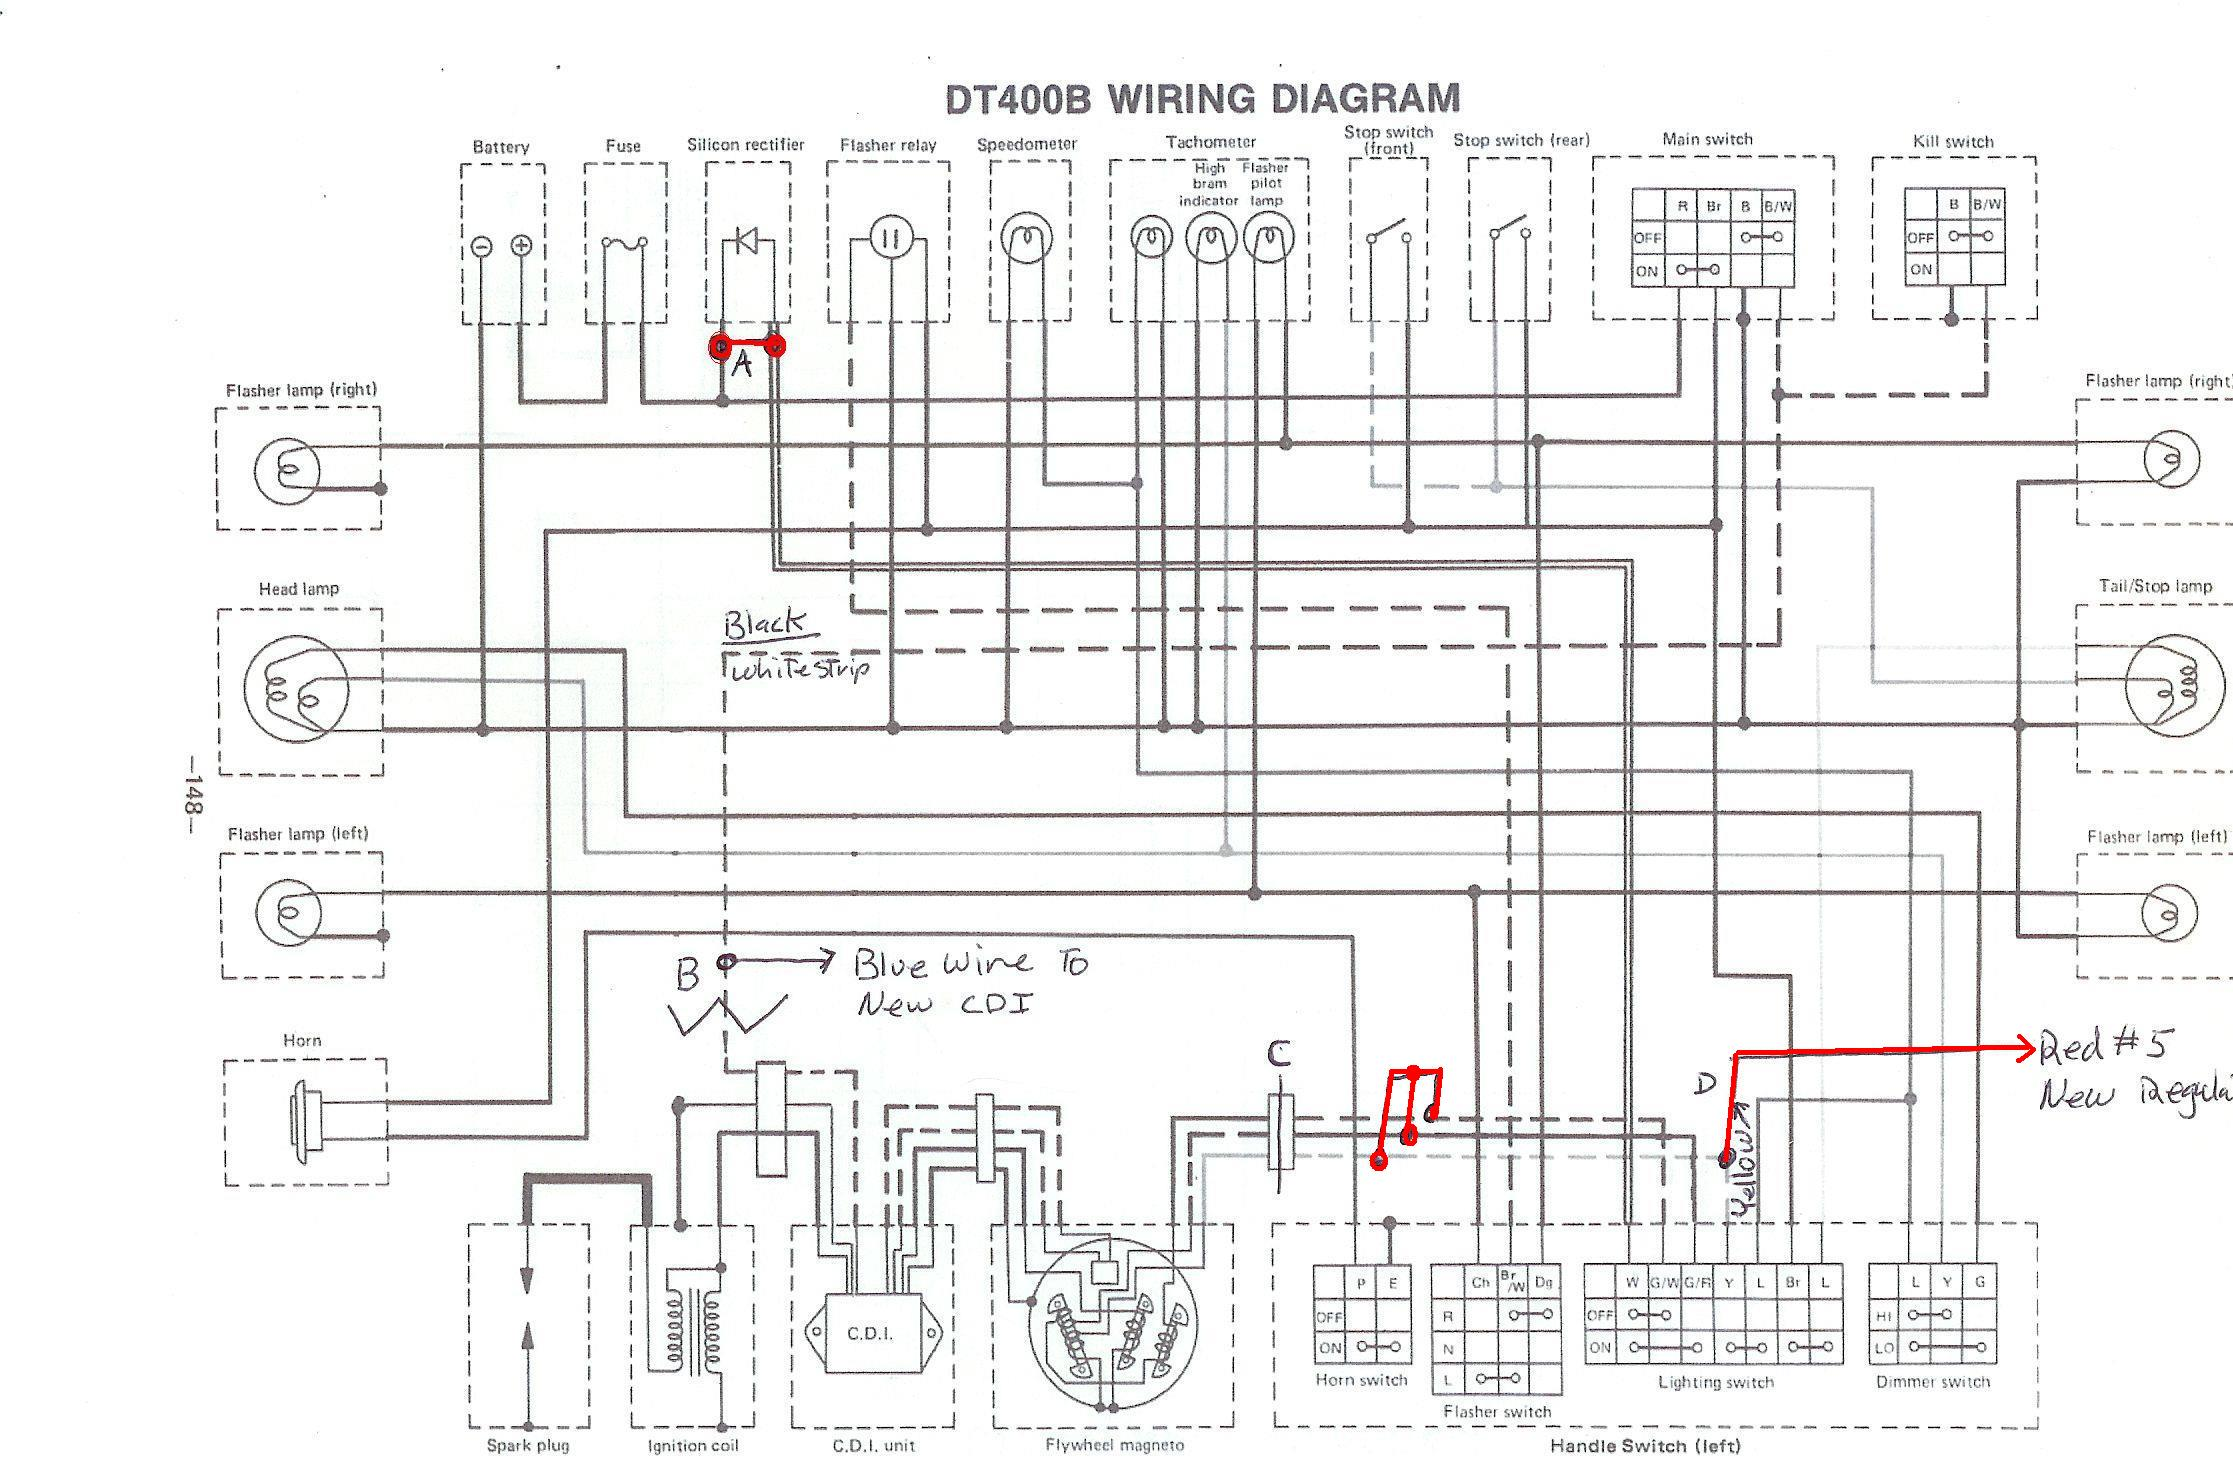 4D7D5 2001 Lincoln Ls Factory Wiring Diagrams | ePANEL ... on 2001 lincoln ls neutral safety switch, 2001 lincoln navigator pcm diagram, 2001 lincoln ls headlight, 2001 lincoln ls 3.9 engine, 2008 lincoln ls wiring diagram, 2001 lincoln ls vacuum diagram, 2001 lincoln ls serpentine belt diagram, 2001 lincoln navigator ac low pressure port location, 2001 lincoln ls battery, 2001 monte carlo ls wiring diagram, 2004 kia amanti wiring diagram, 2001 lincoln ls speaker wiring, 1995 mercury villager wiring diagram, lincoln ls v6 cylinder diagram,